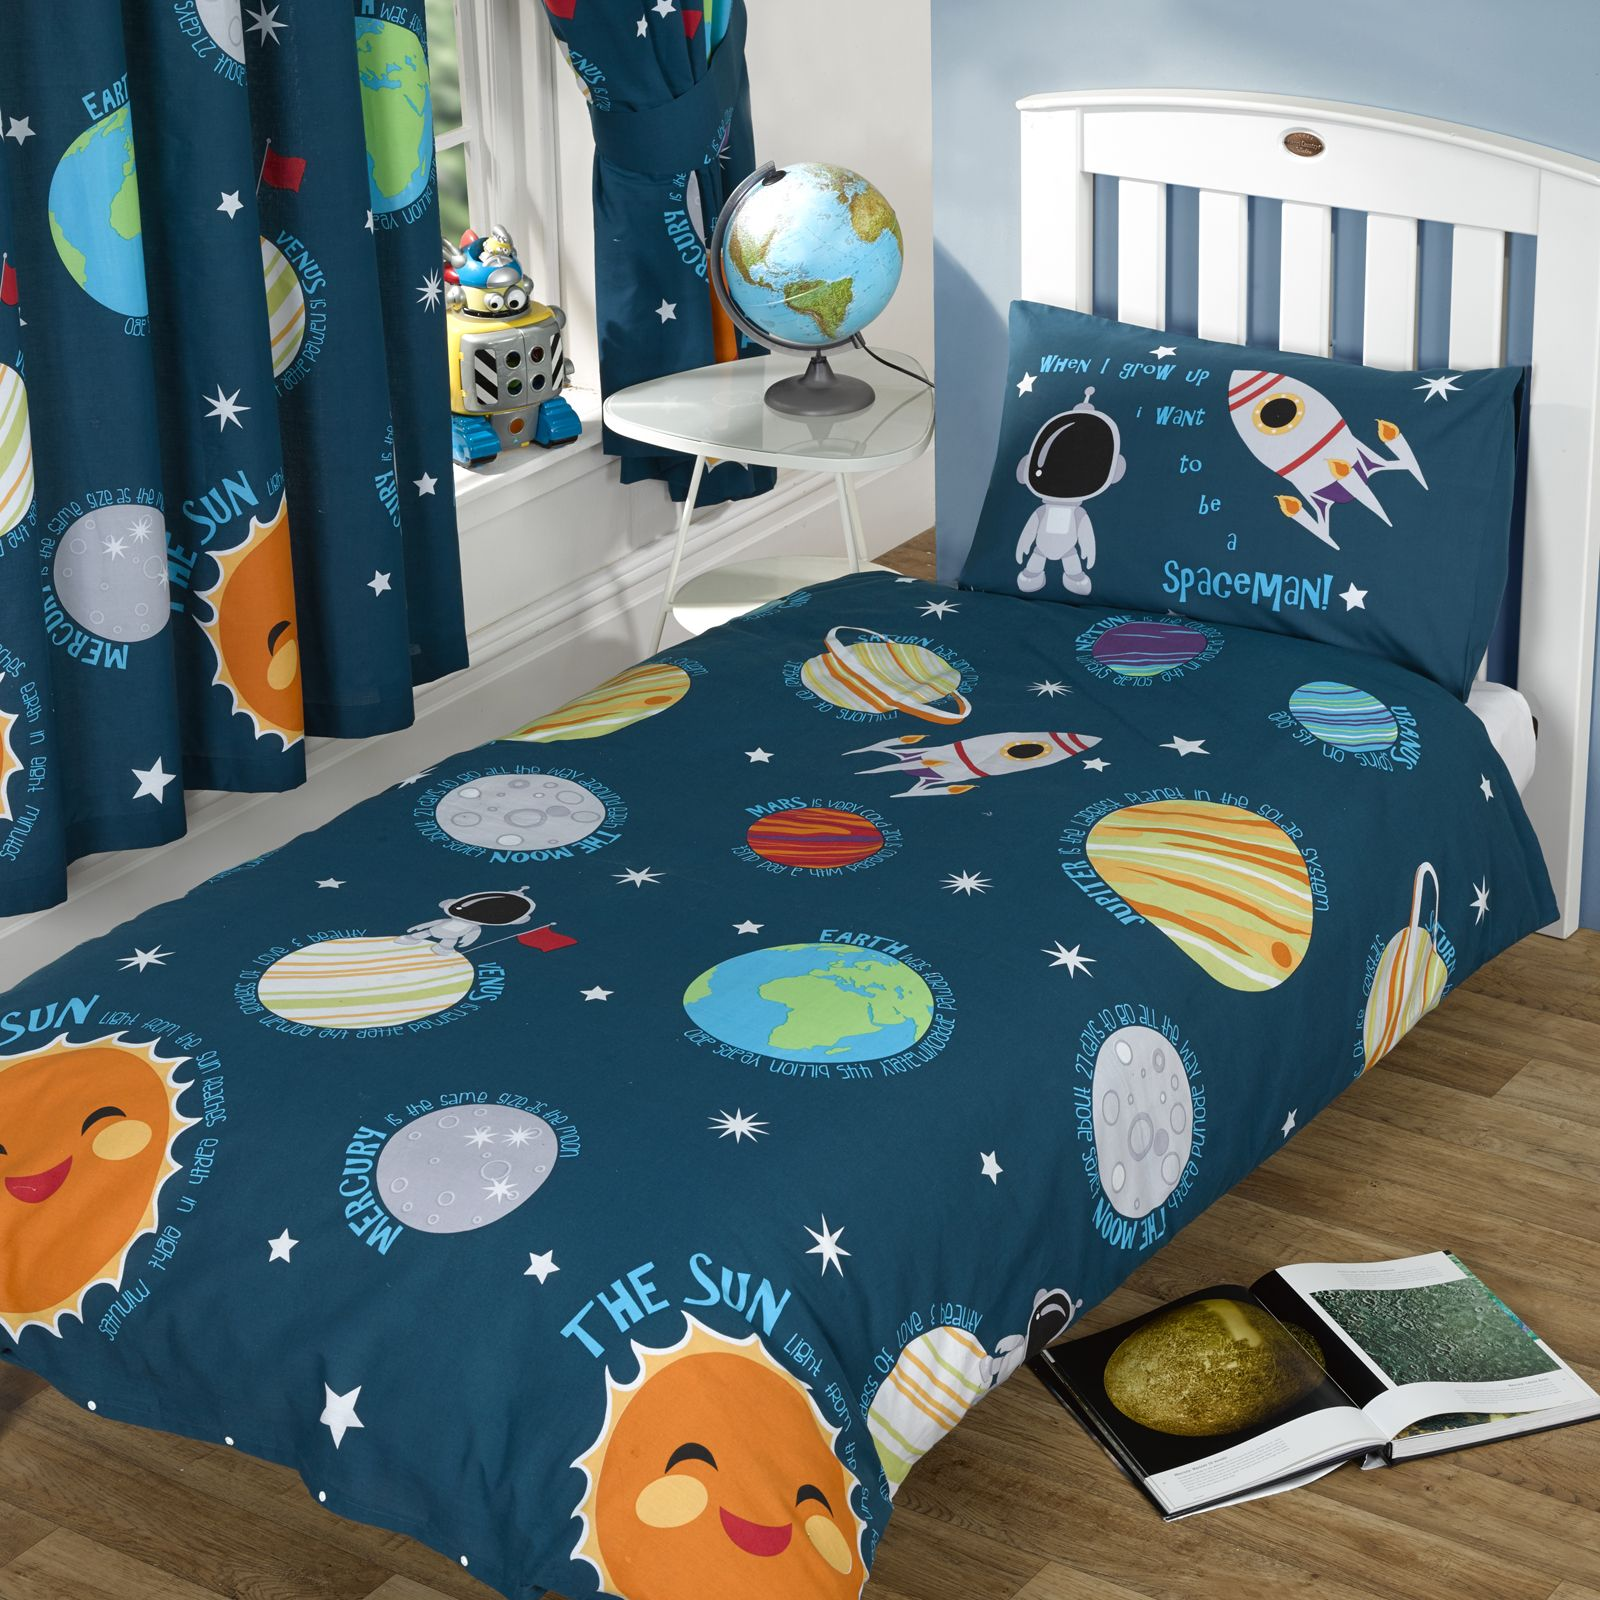 Home 187 unicorn quilt cover set return to previous page - Junior Toddler Duvet Cover Sets Cot Bedding Unicorn Dinosaur Solar Systems New